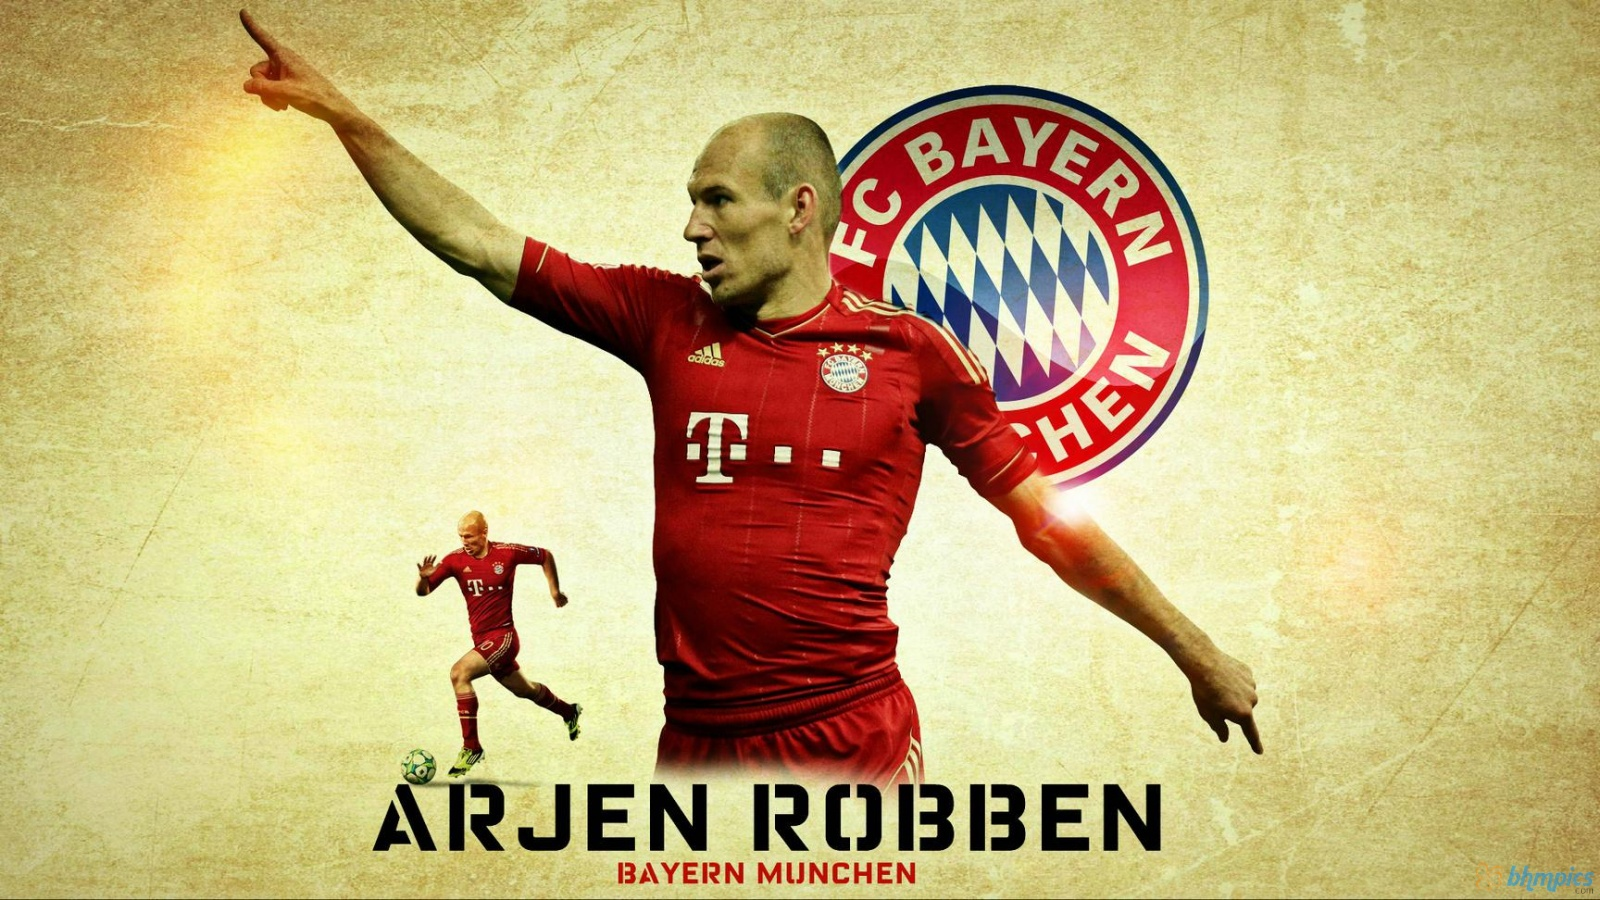 Arjen Robben Wallpaper Free Downloads